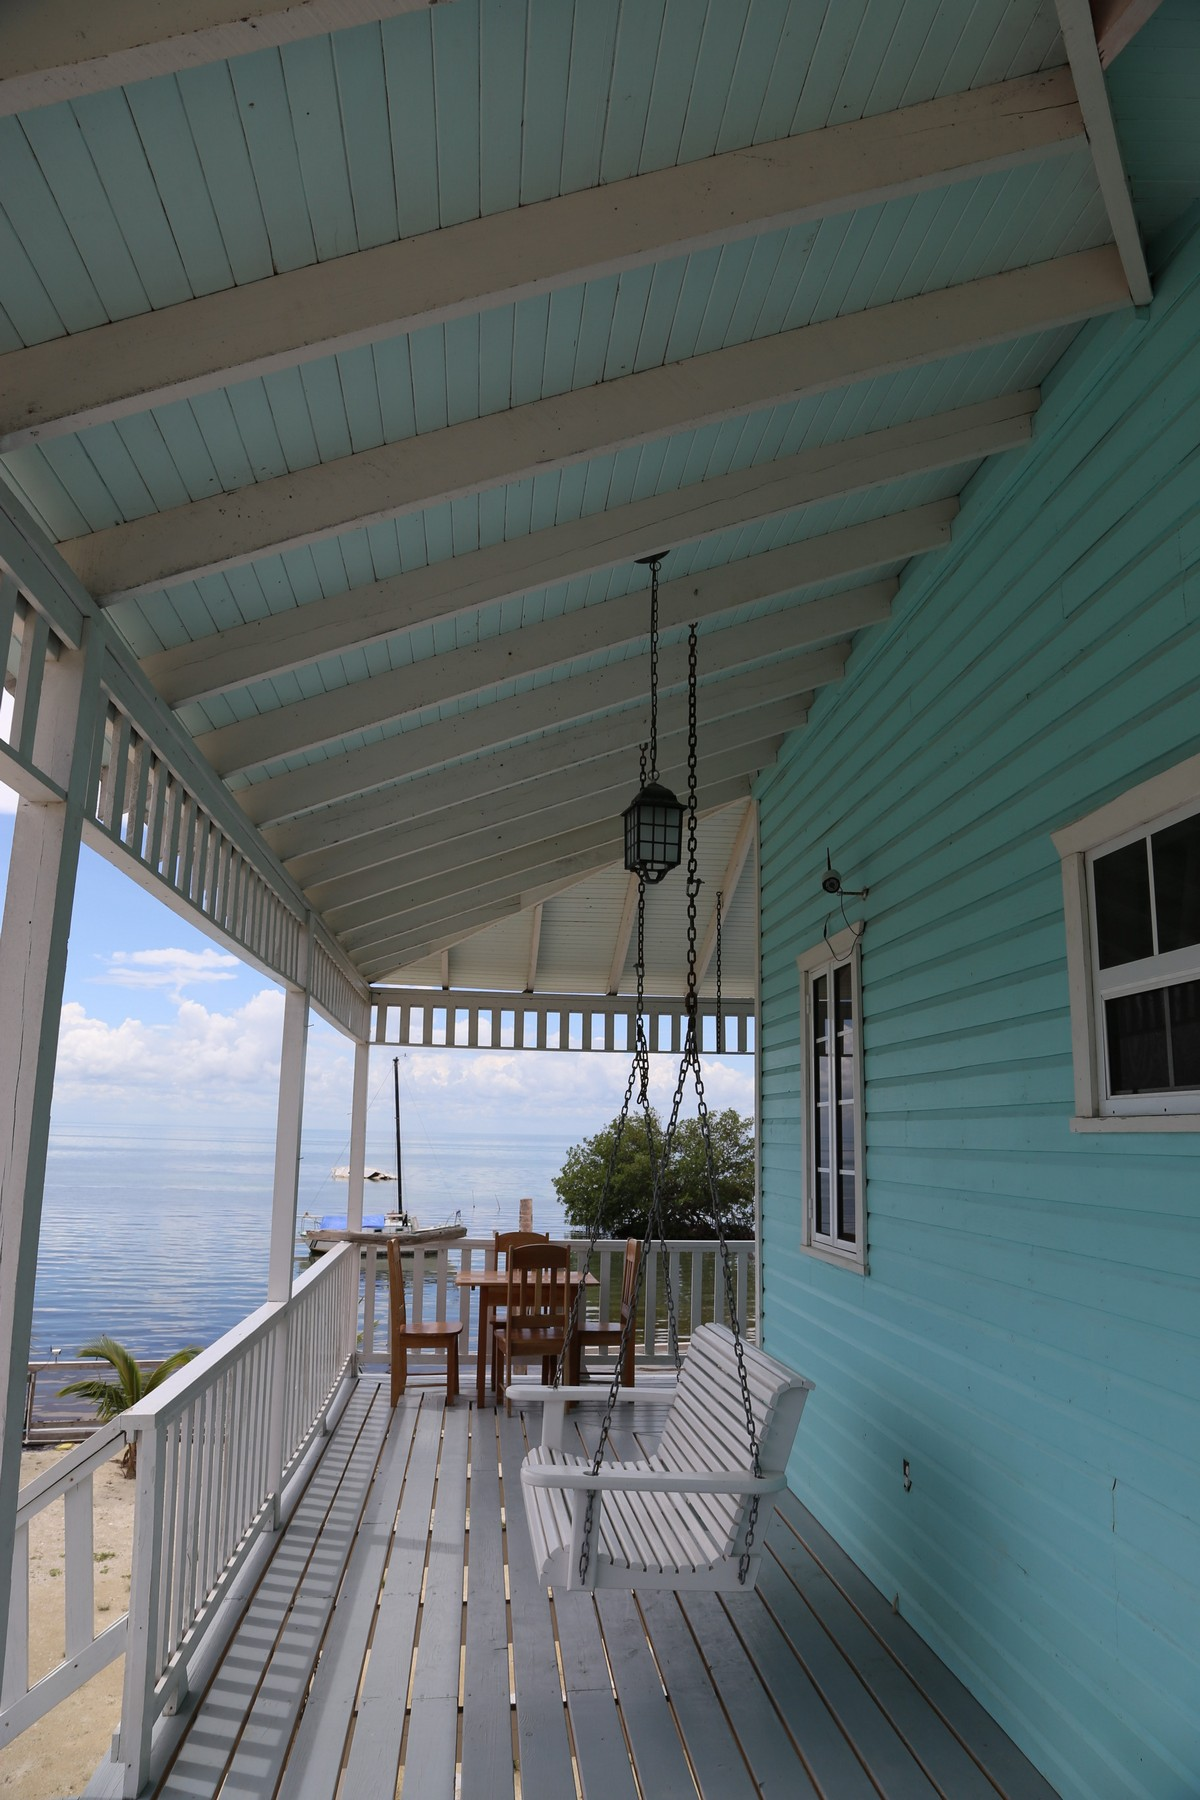 Multi-Family Home for Sale at Caye Caulker Oceanfront Caye Caulker, Belize Belize